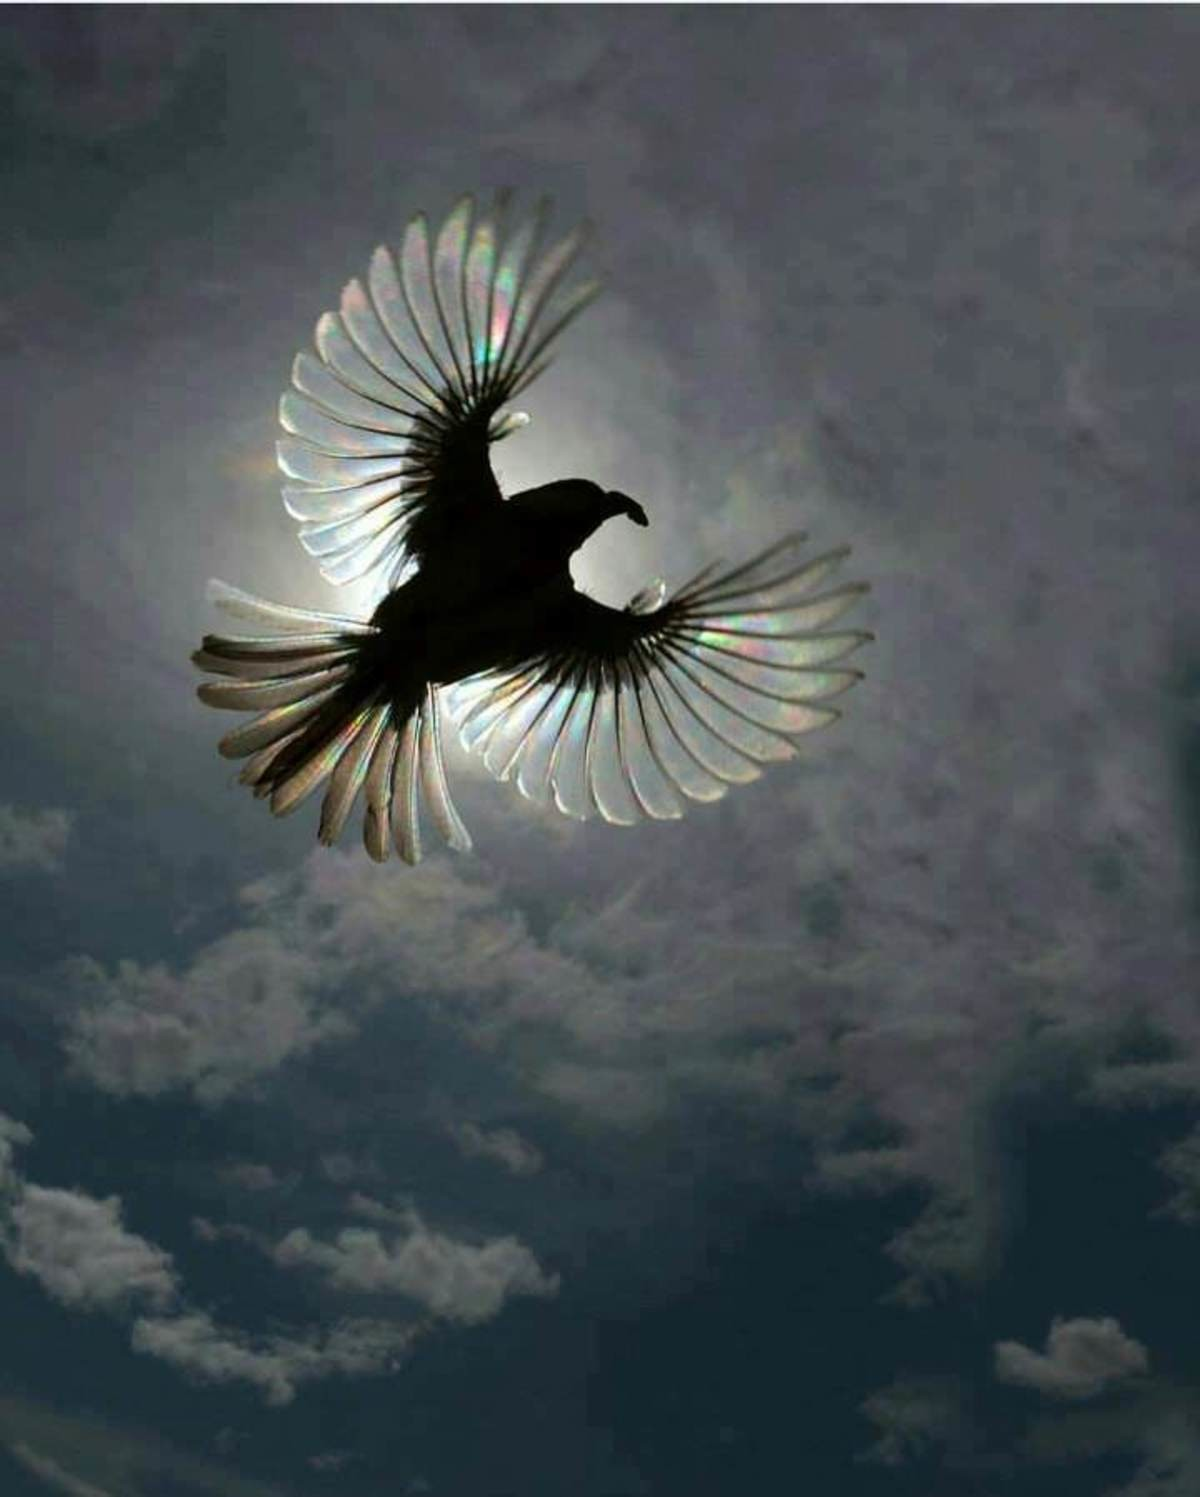 Birb!. Not my photo, just thought it was cool.